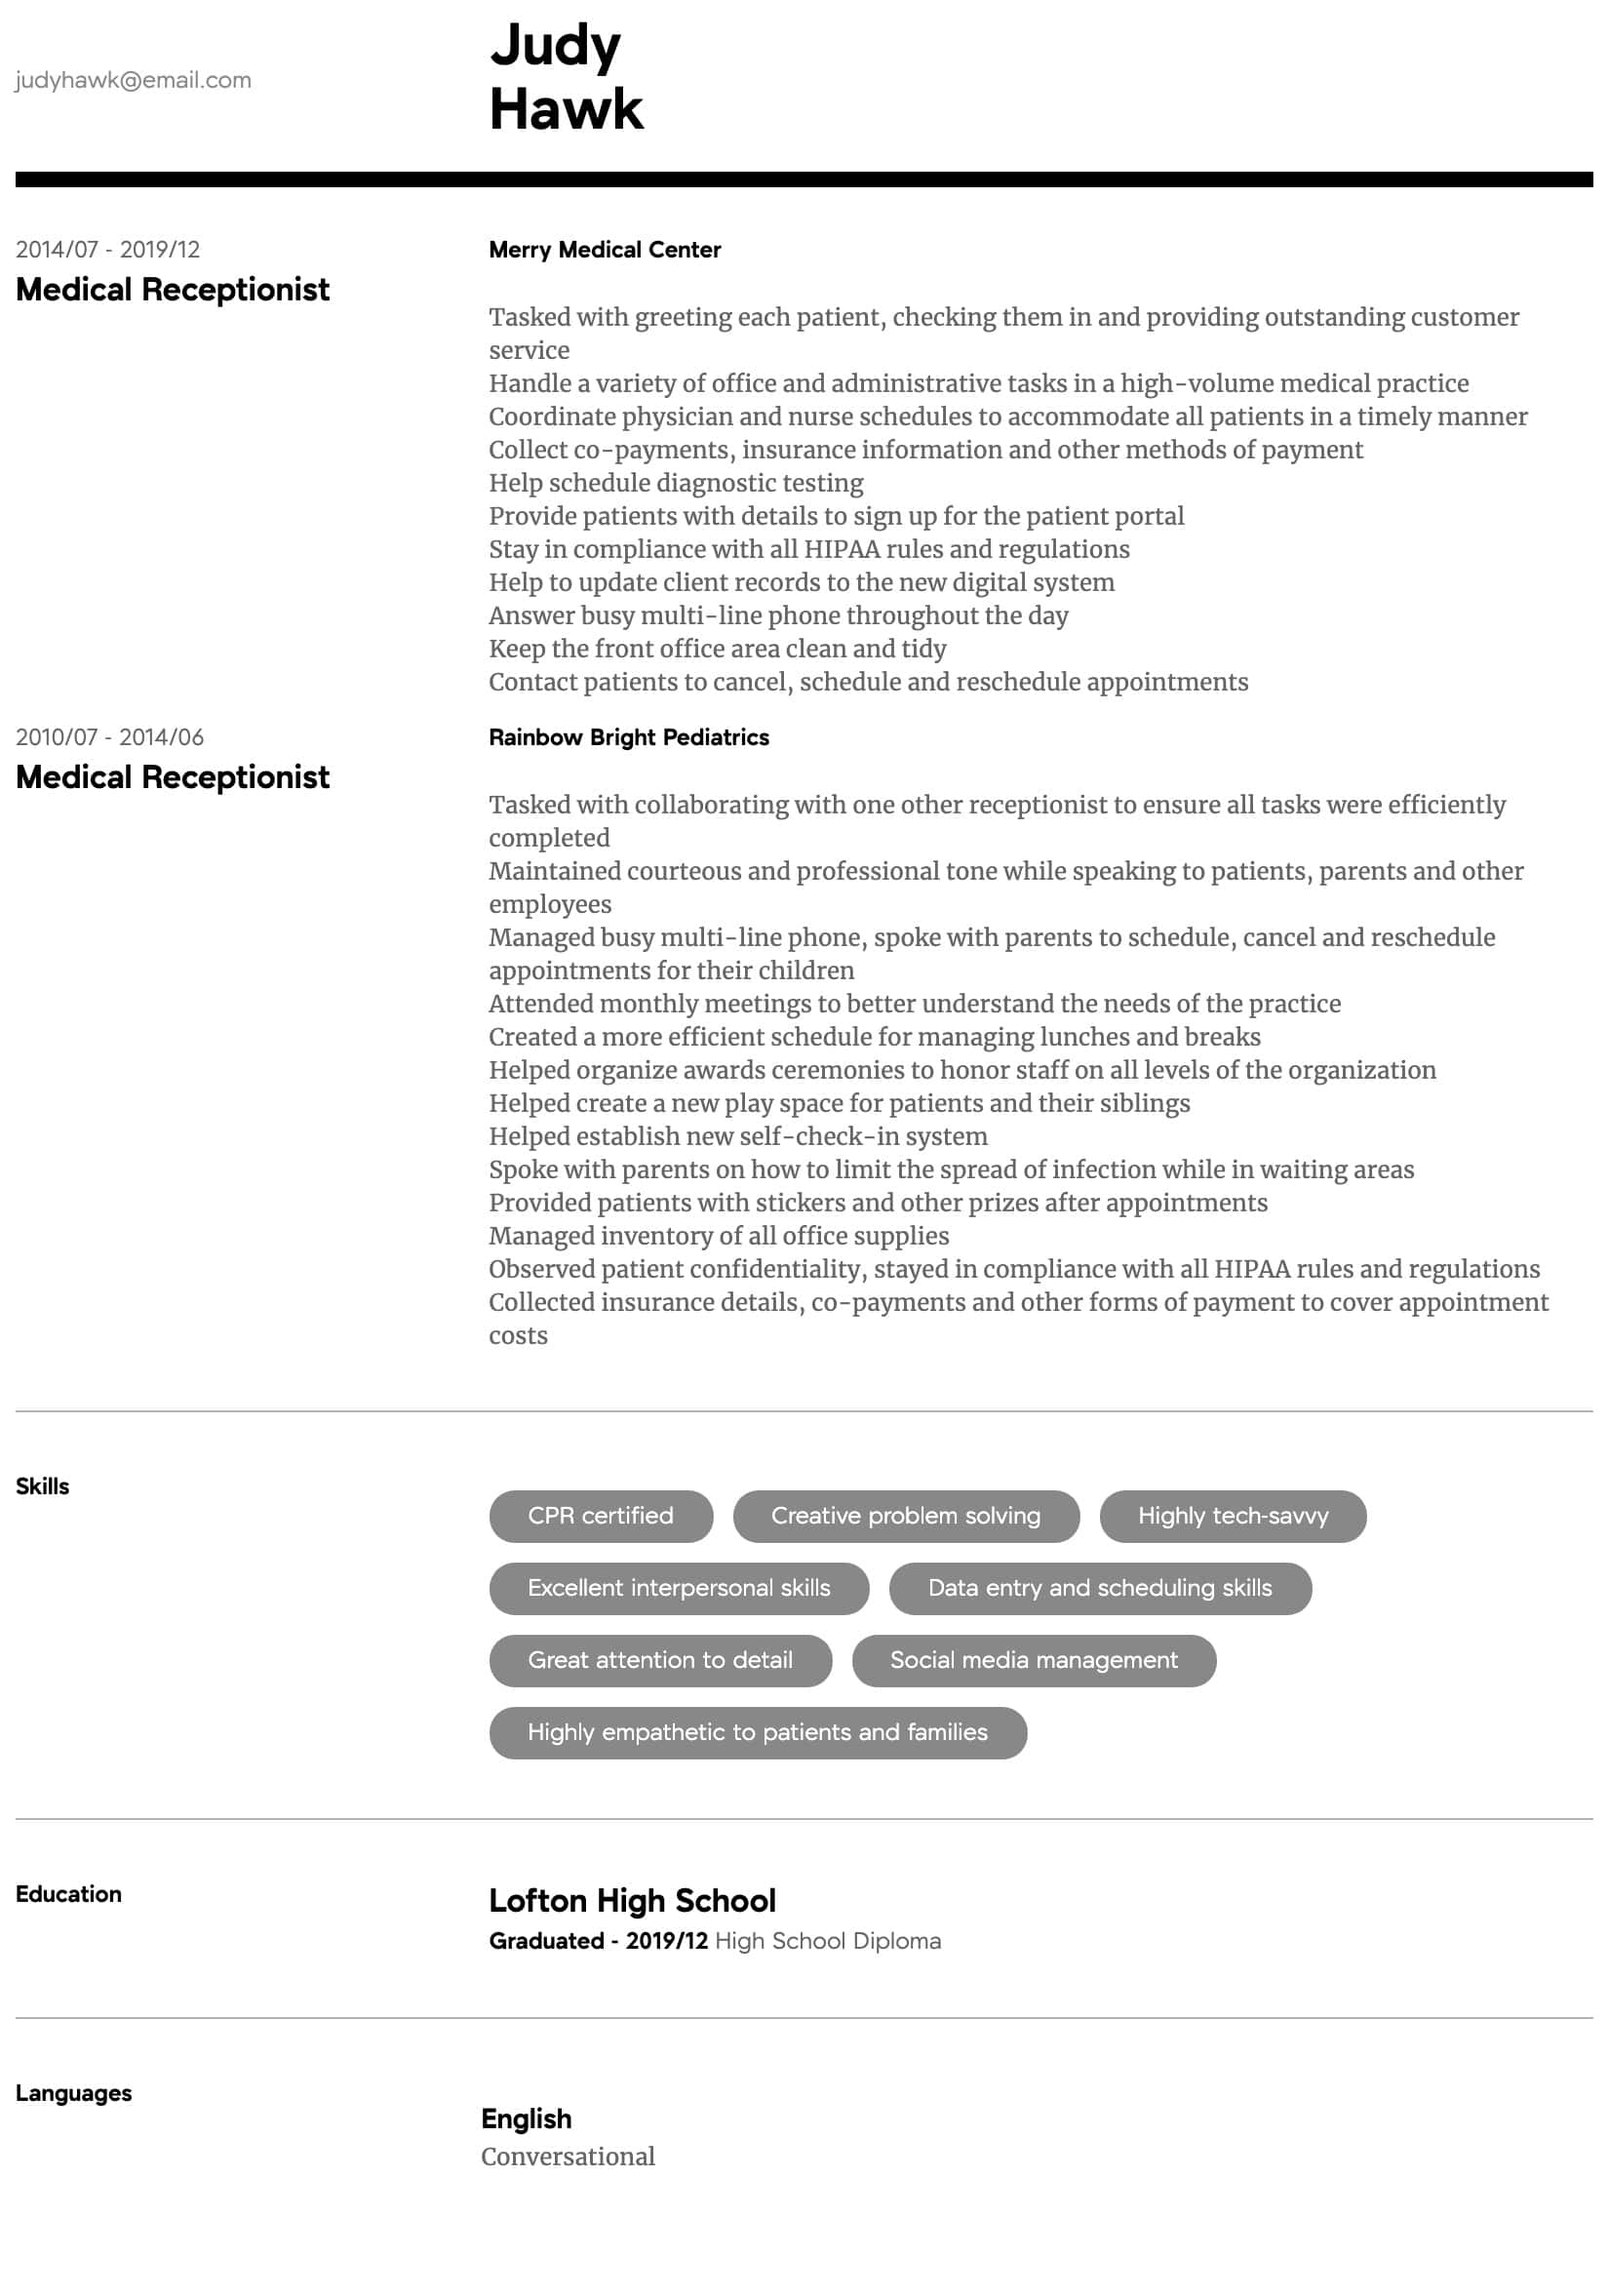 medical receptionist resume samples all experience levels professional summary sample for Resume Professional Summary Resume Sample For Receptionist